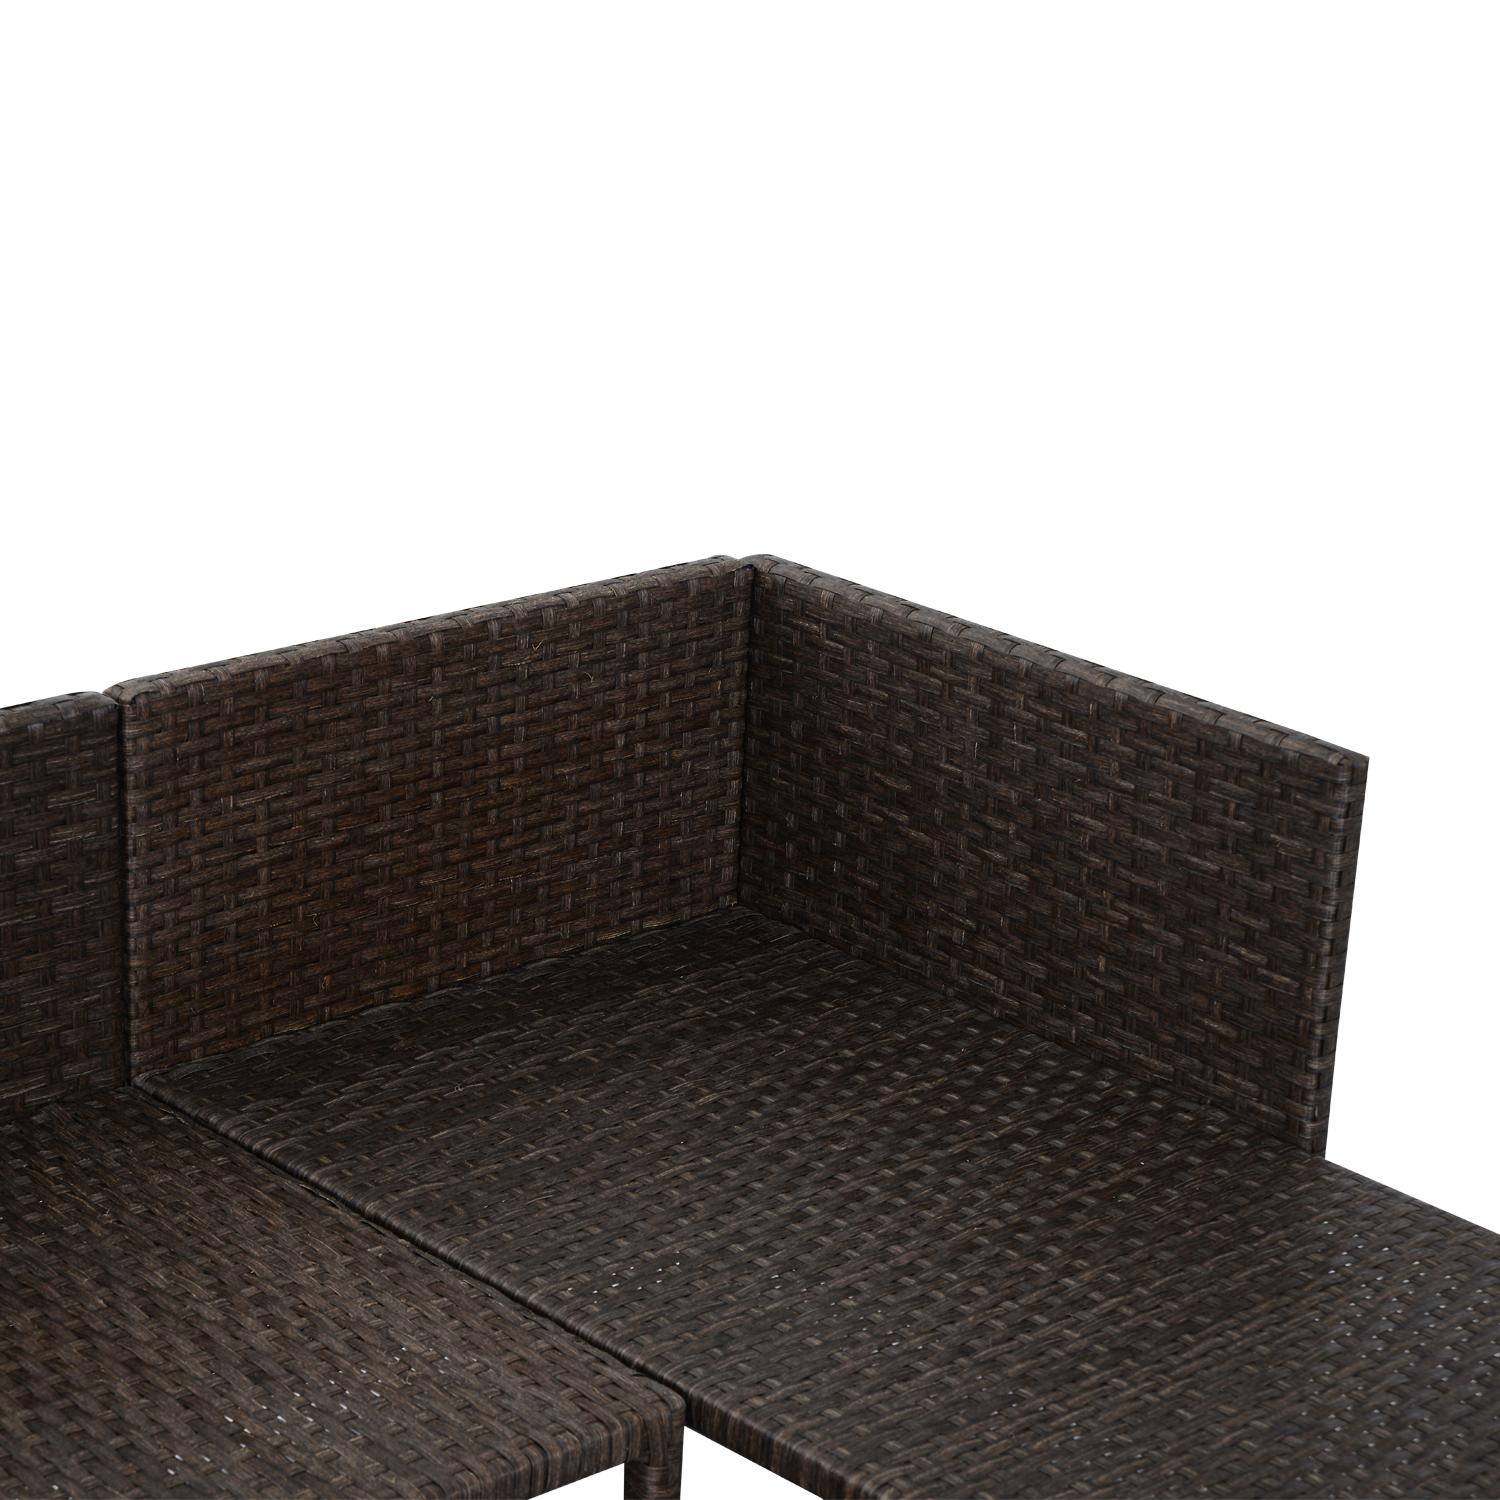 Outsunny 3 piece outdoor rattan wicker sofa for Belmont 4 piece brown wicker patio chaise lounge set